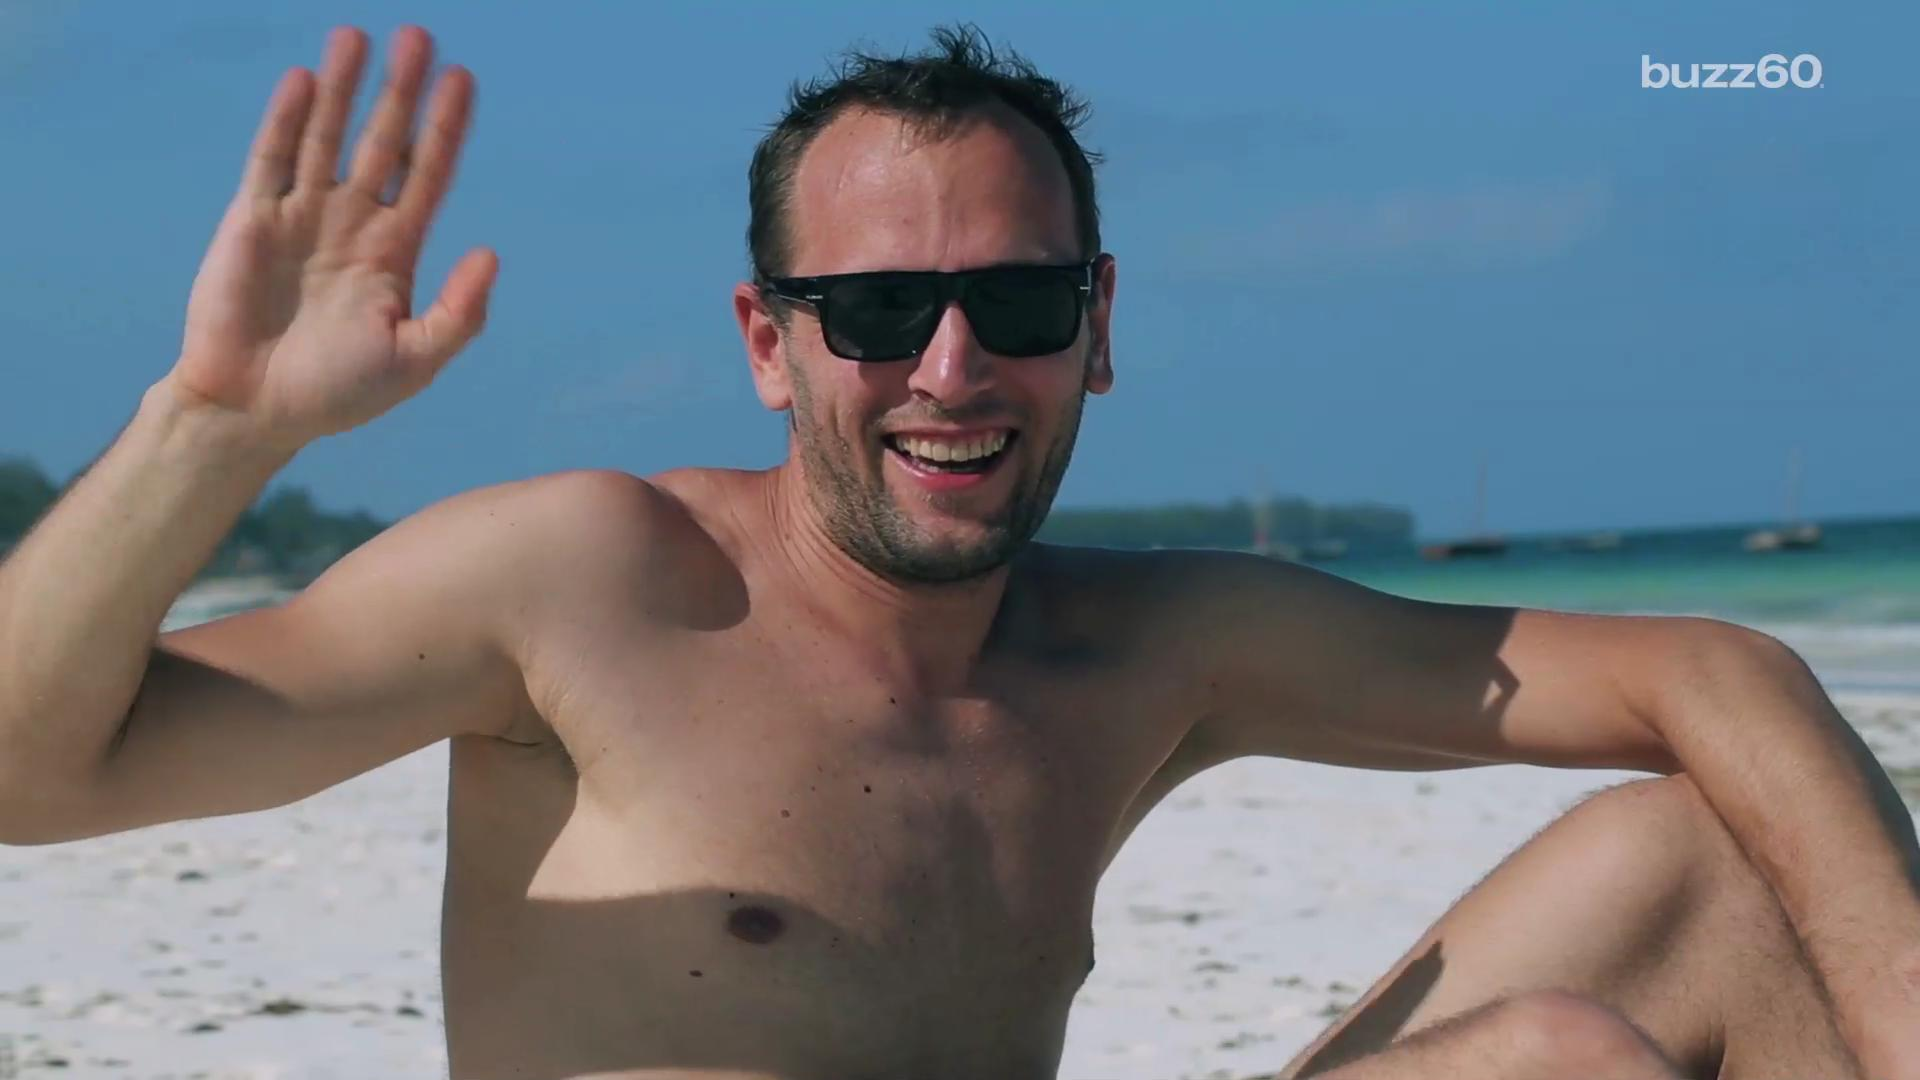 American hand gestures that don't translate well abroad